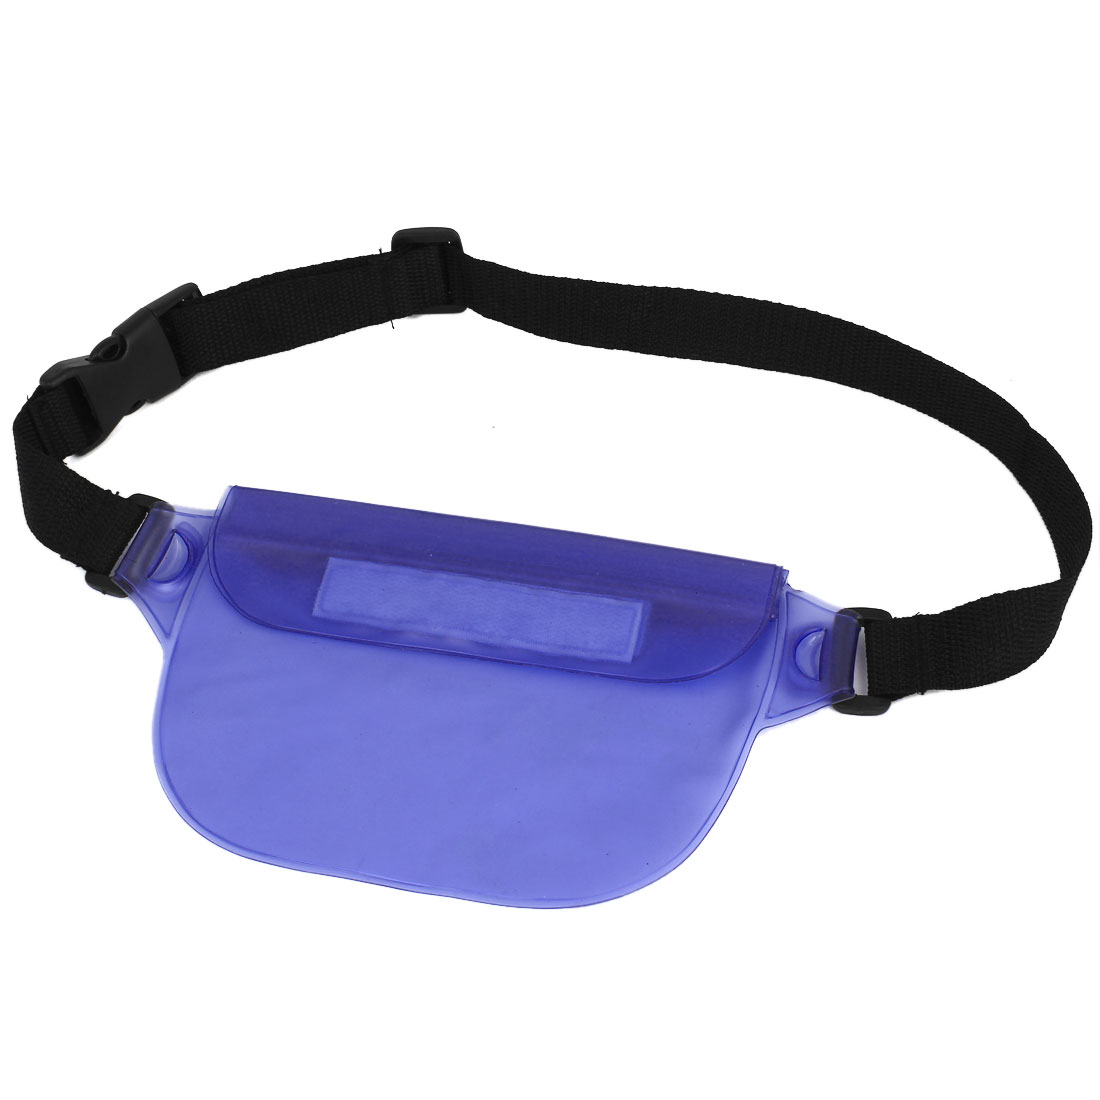 Waterproof Unisex Travel Hip Fanny Waist Bag Pack Belt Pouch Purse Blue